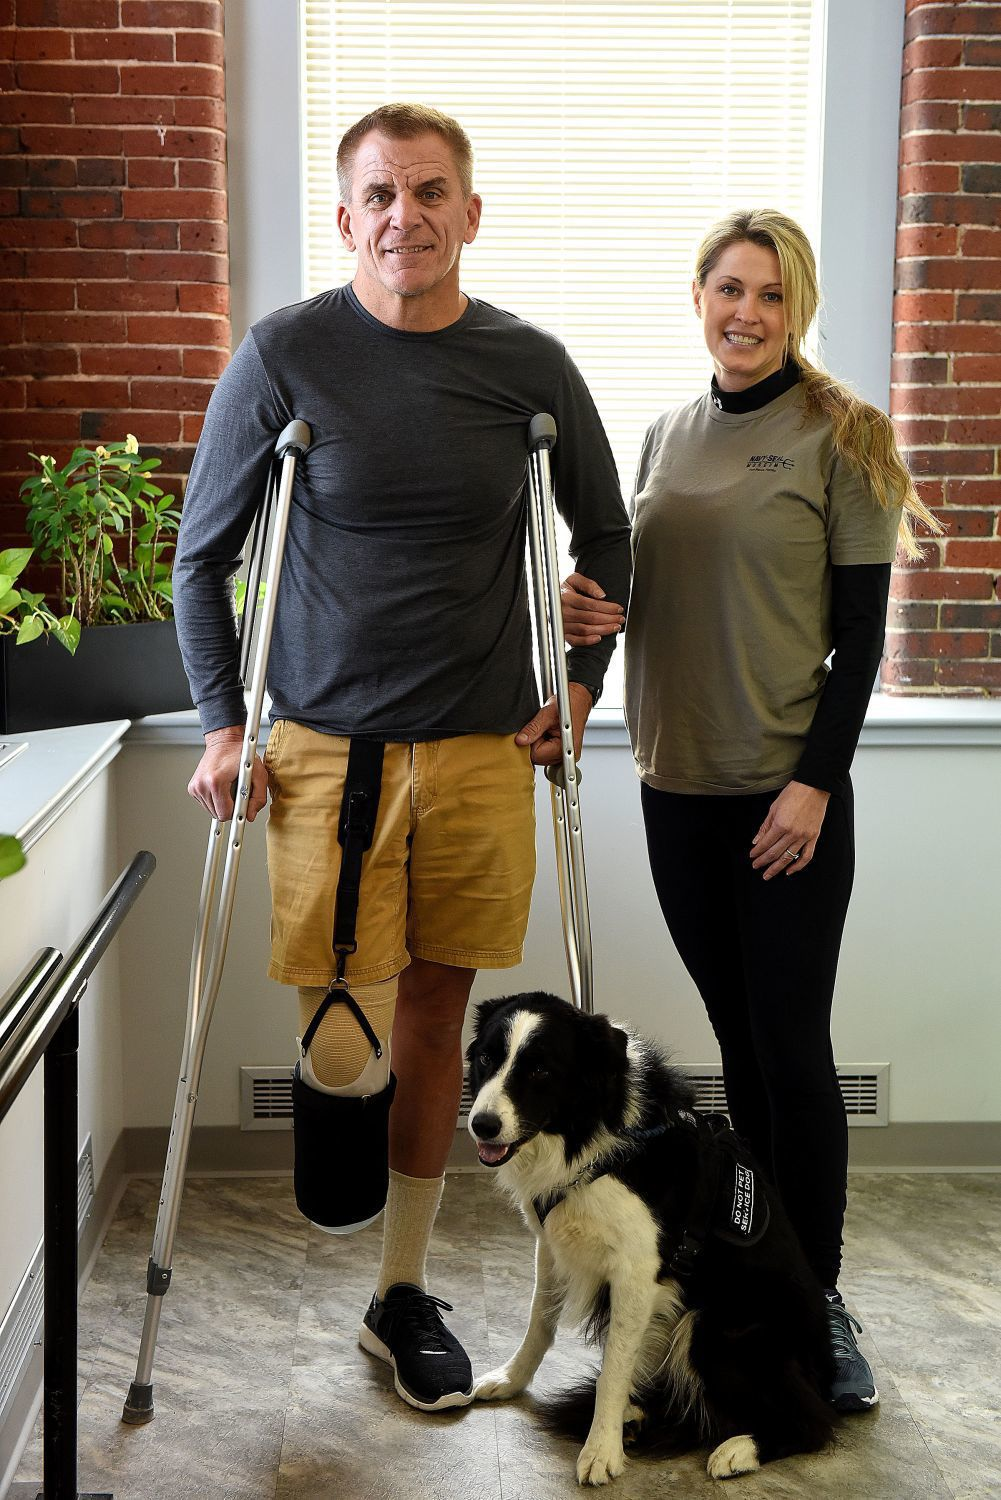 Former Navy SEAL will walk again with help from Millyard firm